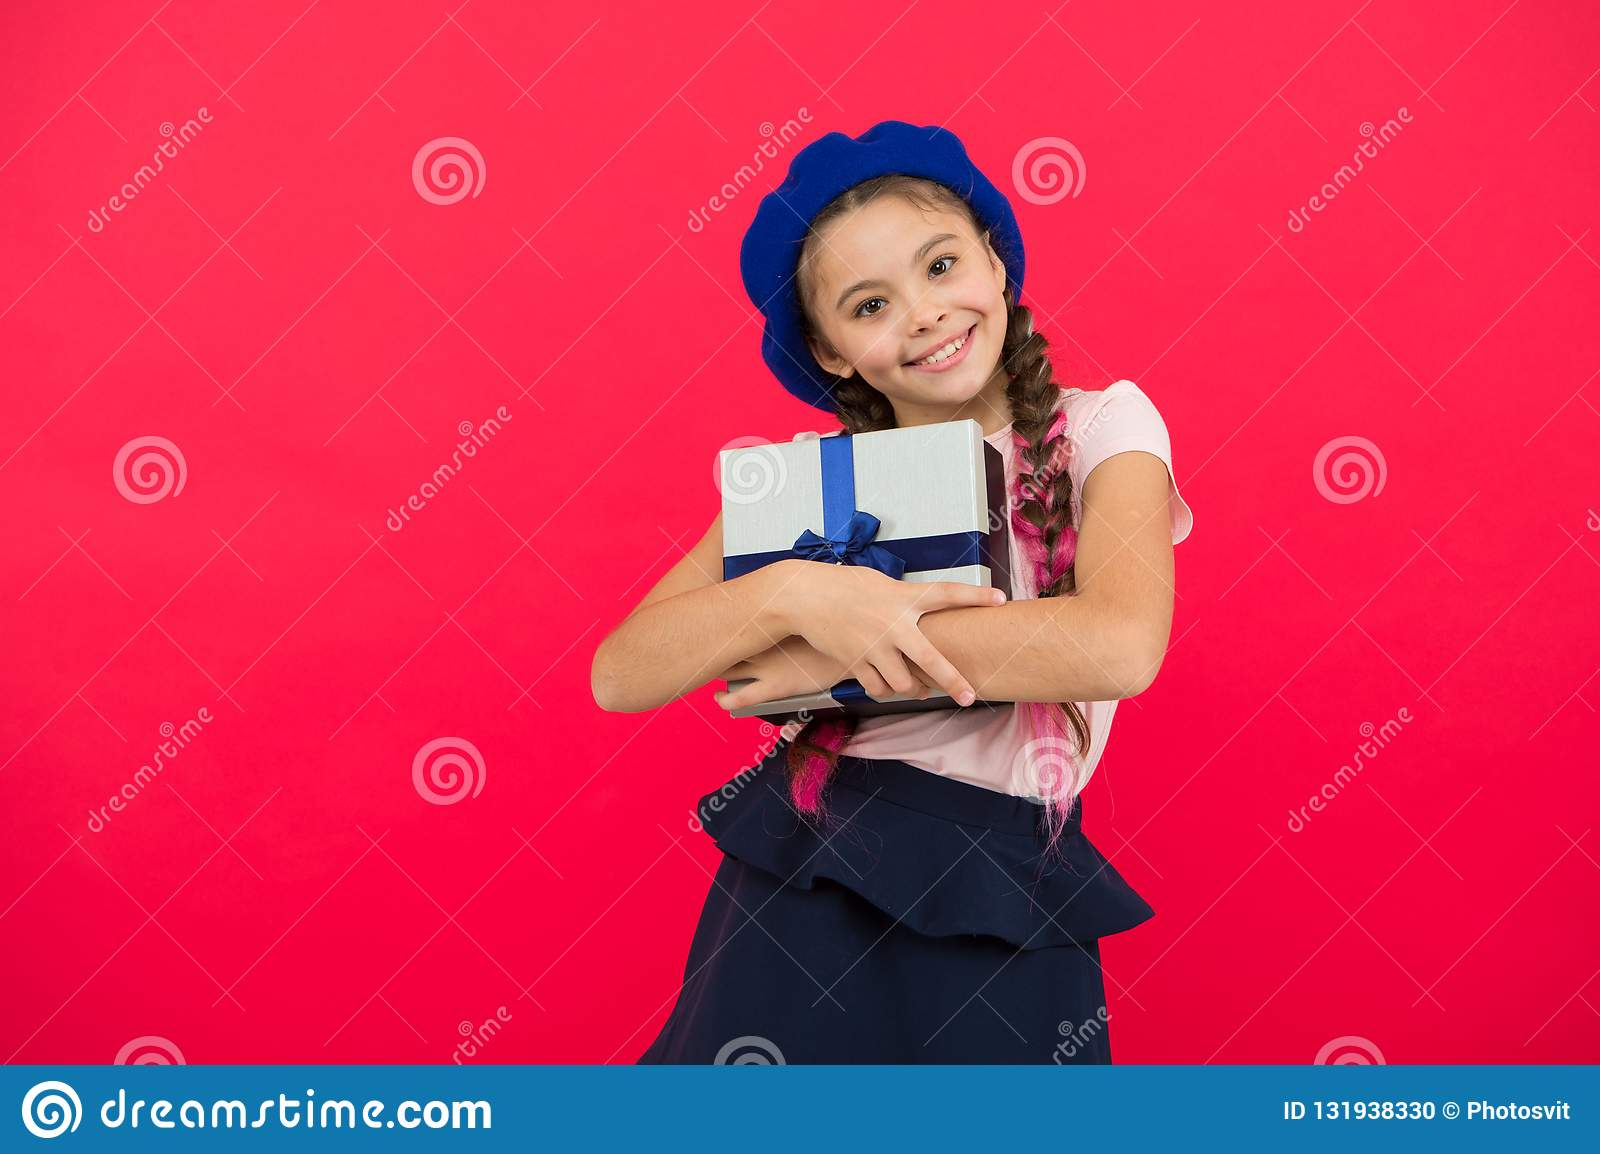 small cute girl received gift pack with ribbon bow guess what your child dream about